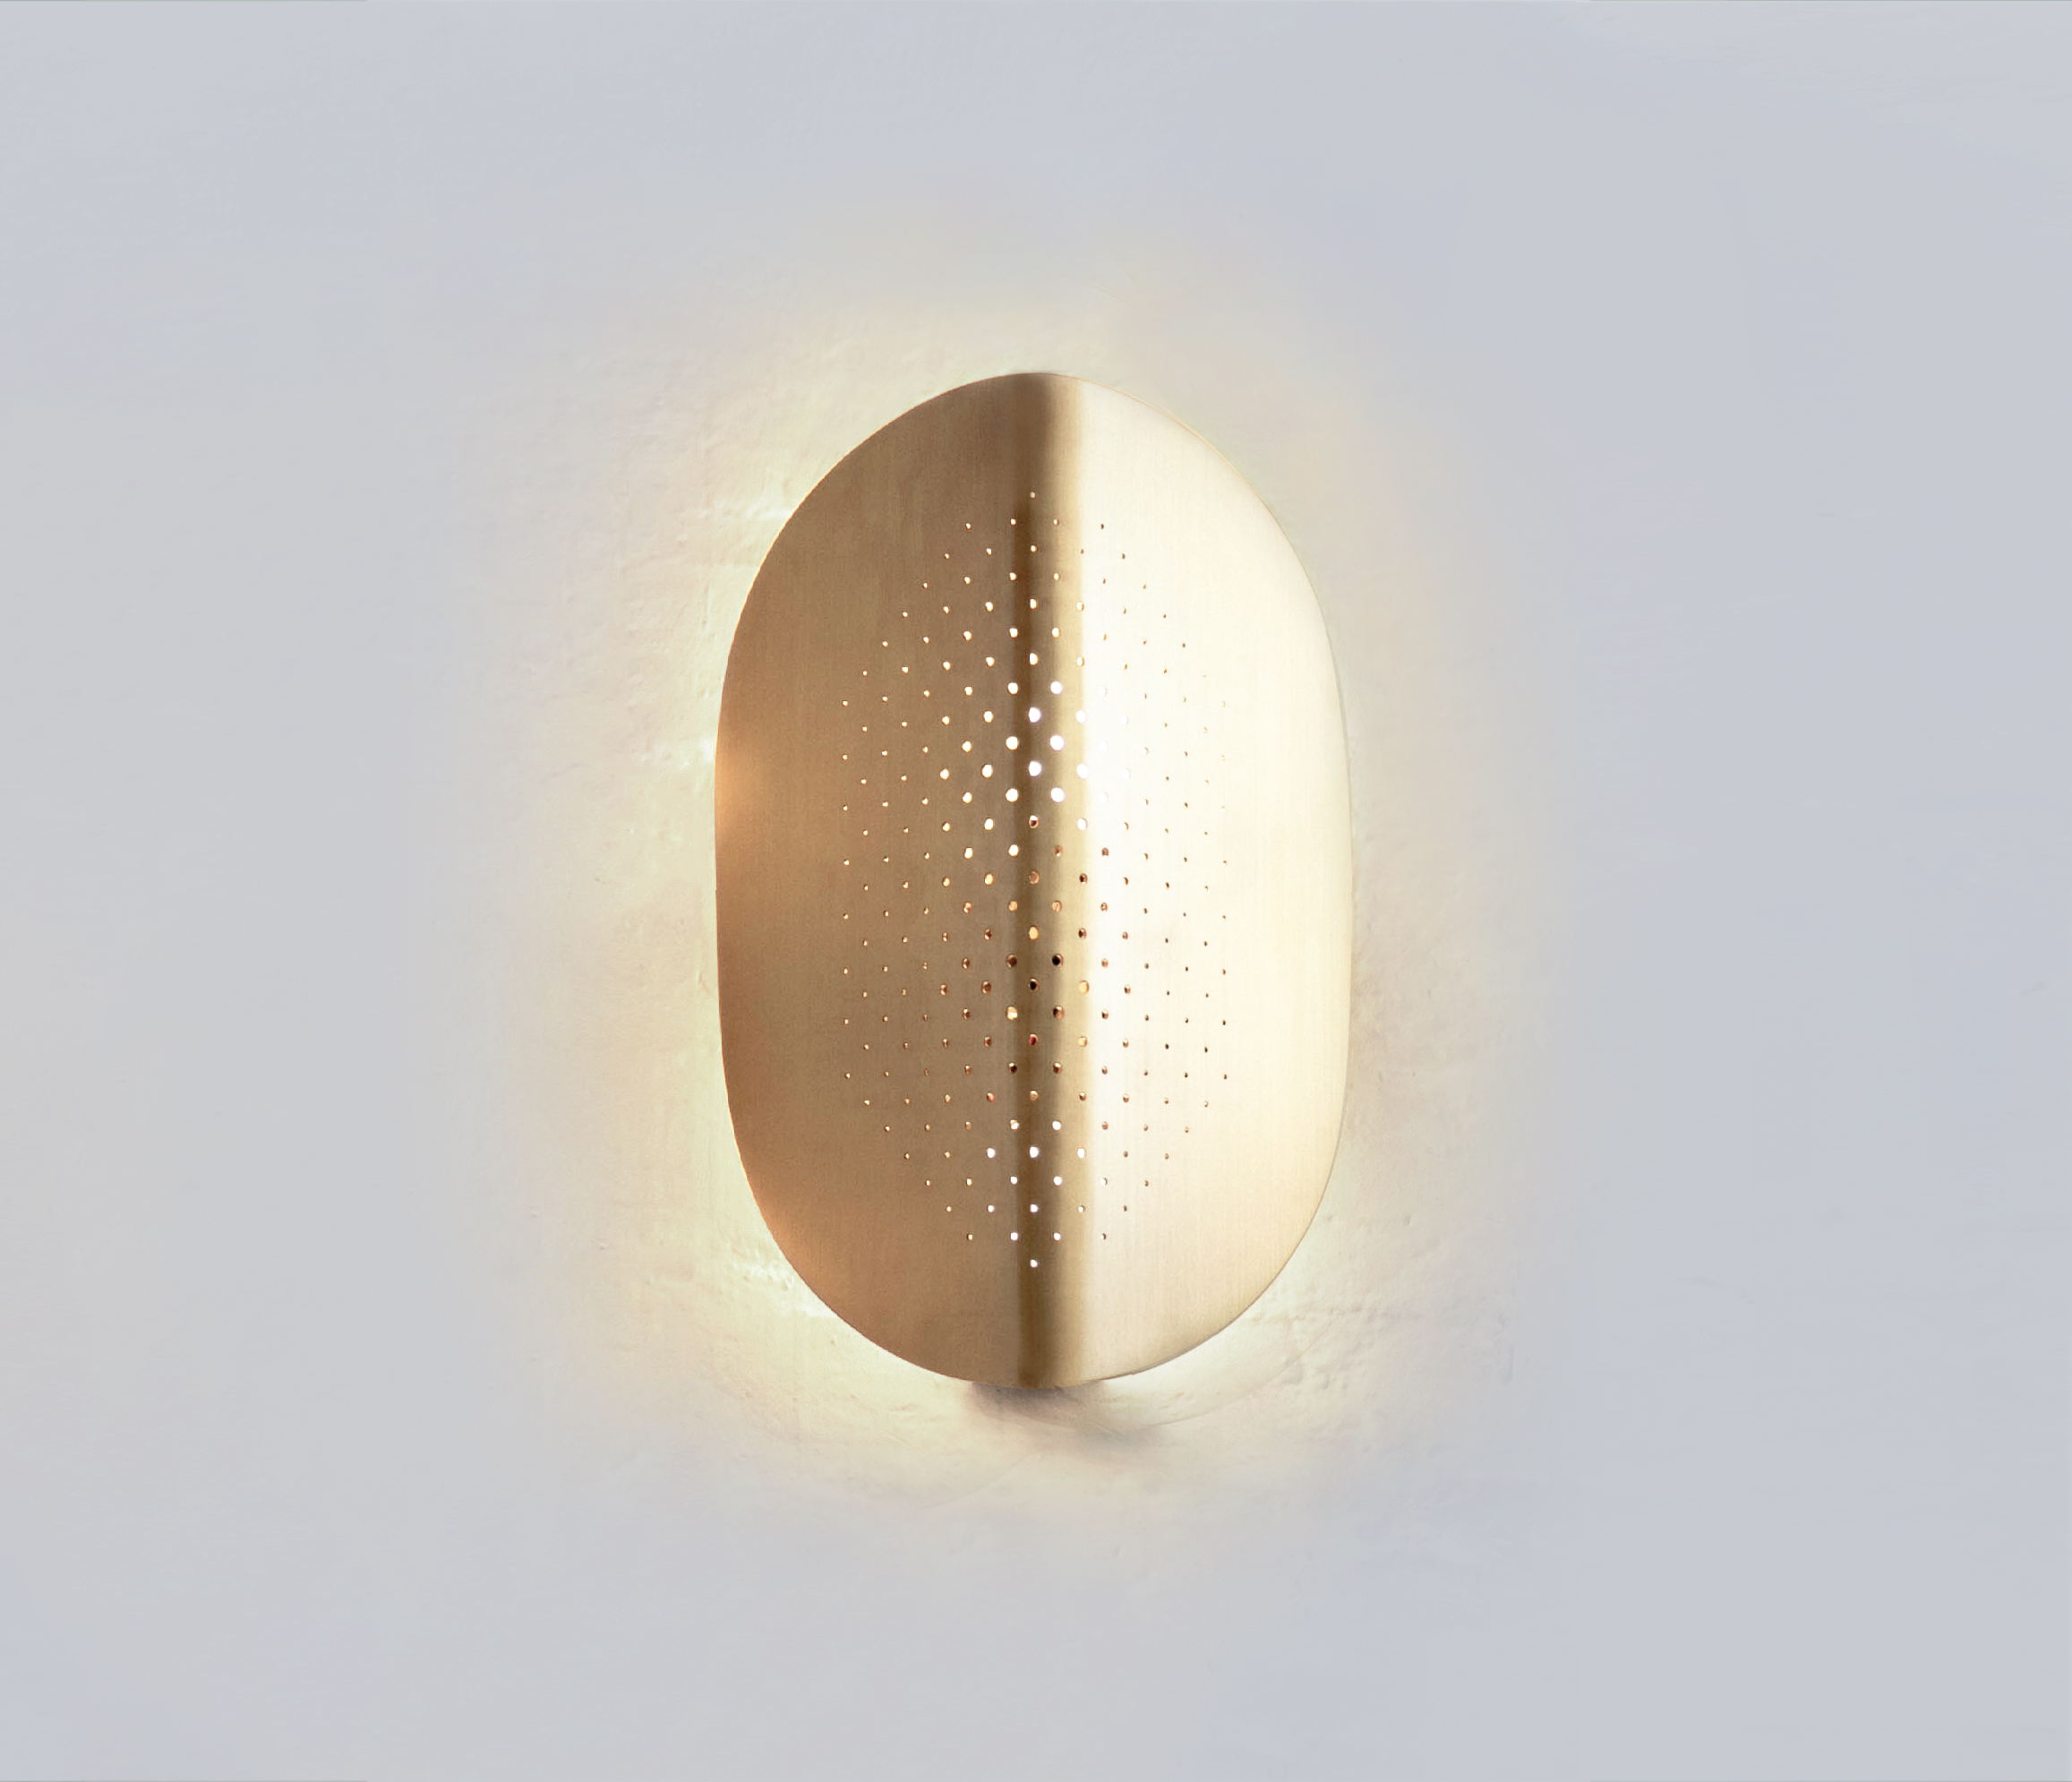 SB26 Accoceberry Cecere Moon Wall Lamp S